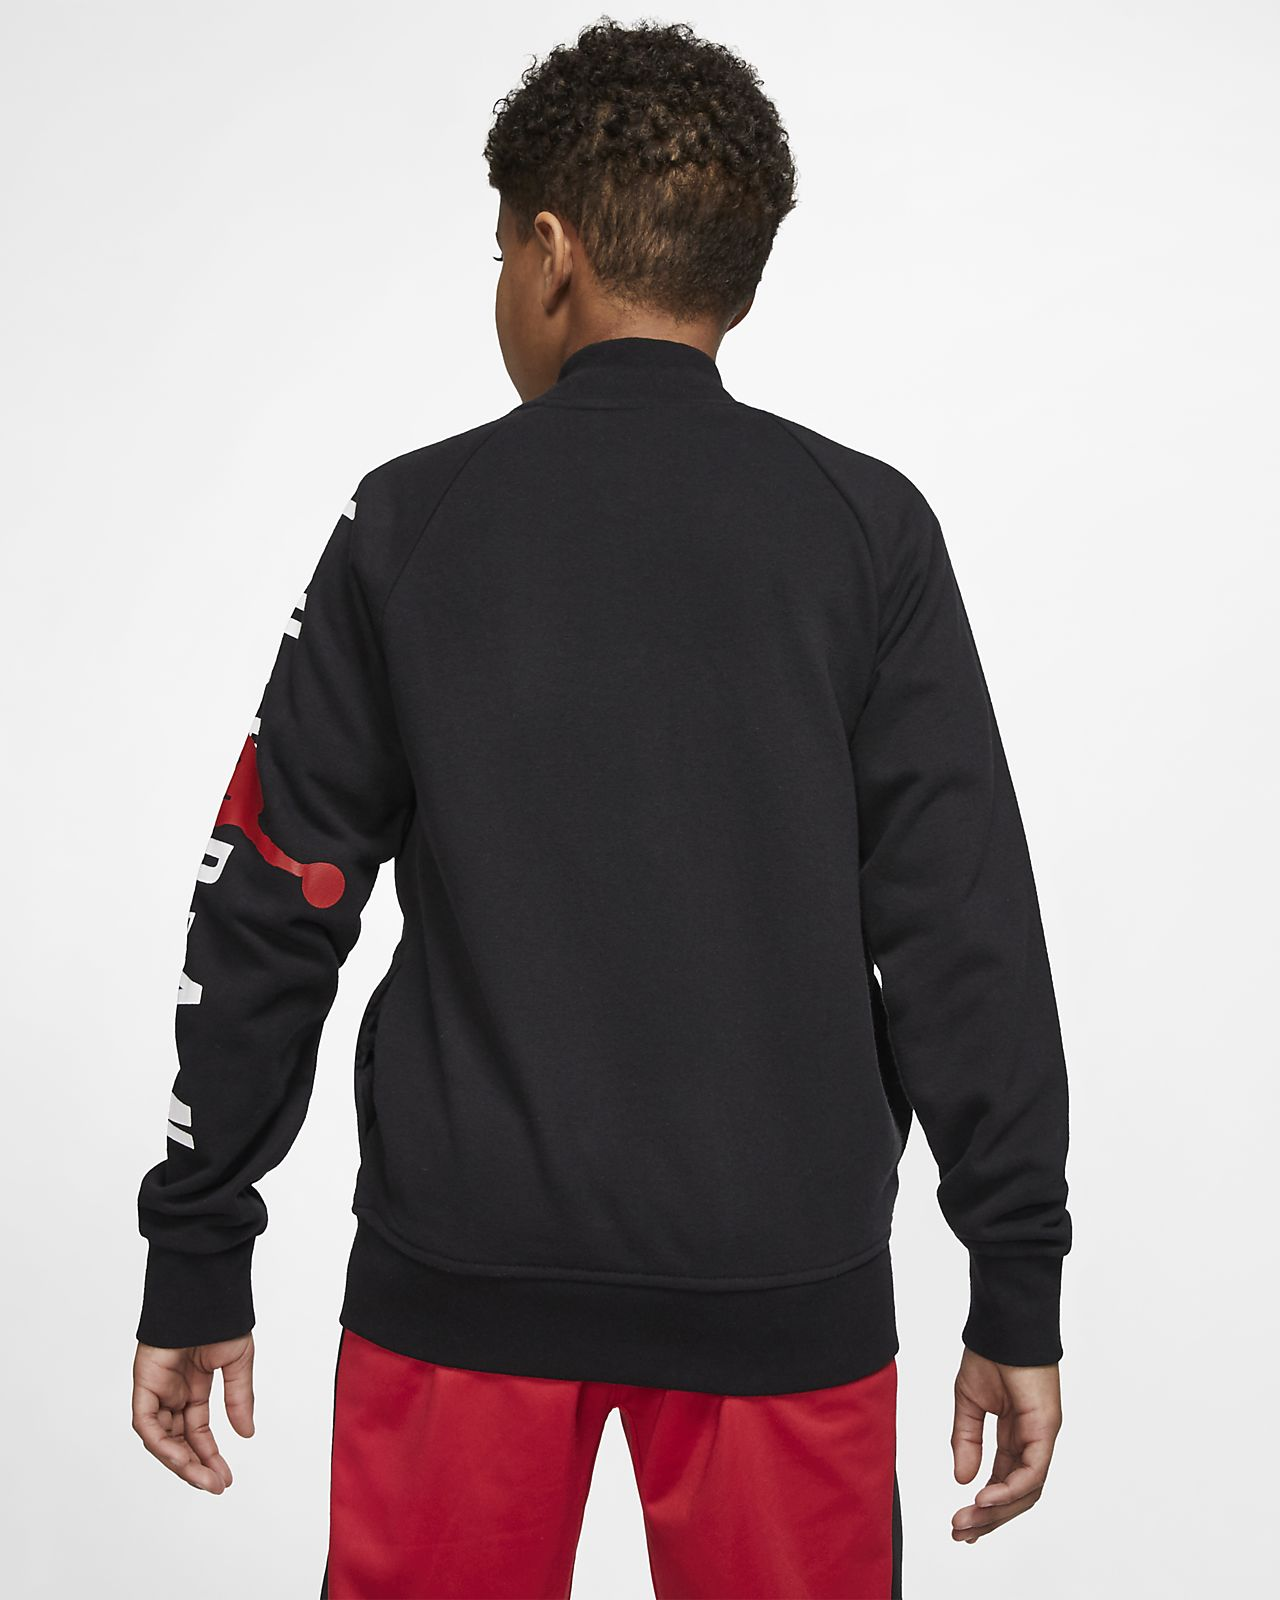 online store d1fe9 8b31e ... Jordan Jumpman Stadium Big Kids  (Boys ) Jacket